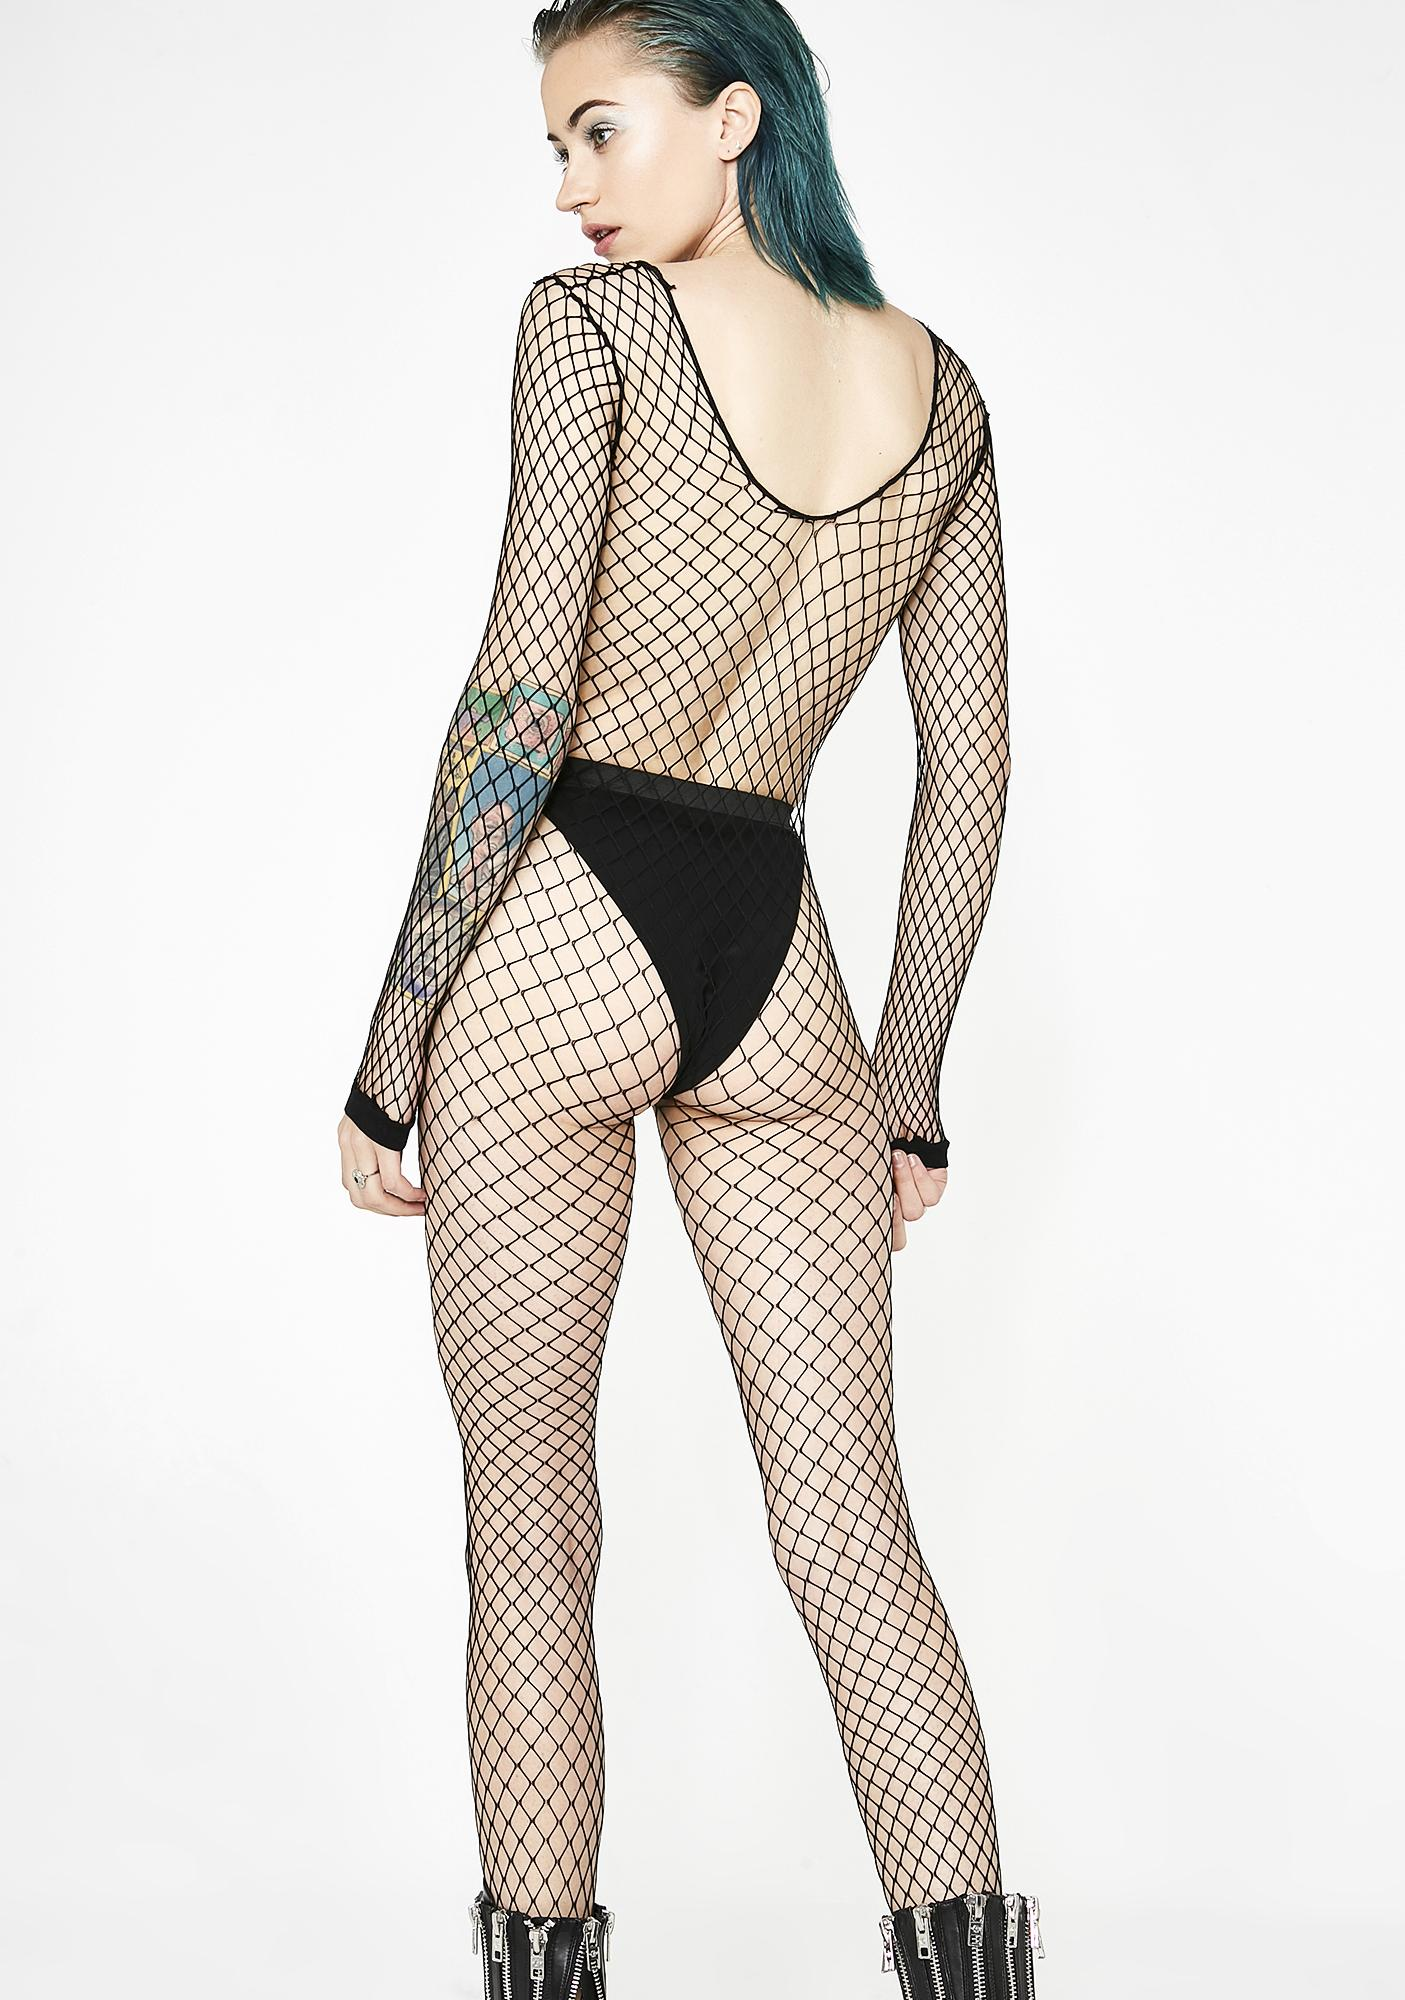 Slipstream Fishnet Body Stocking